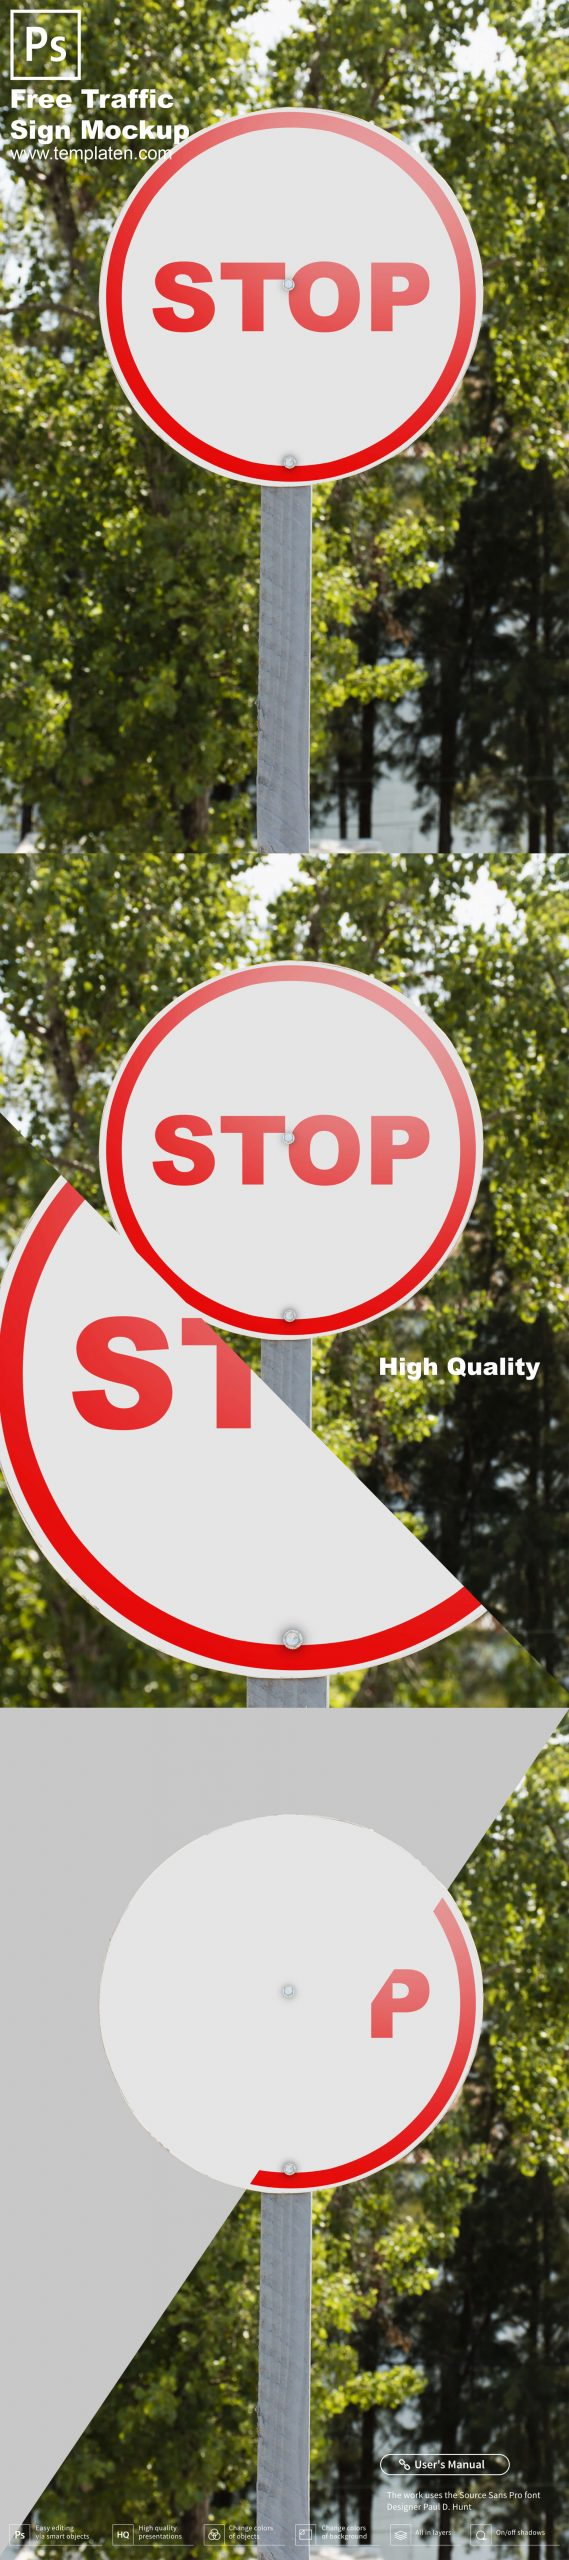 Free Traffic Sign PSD Template